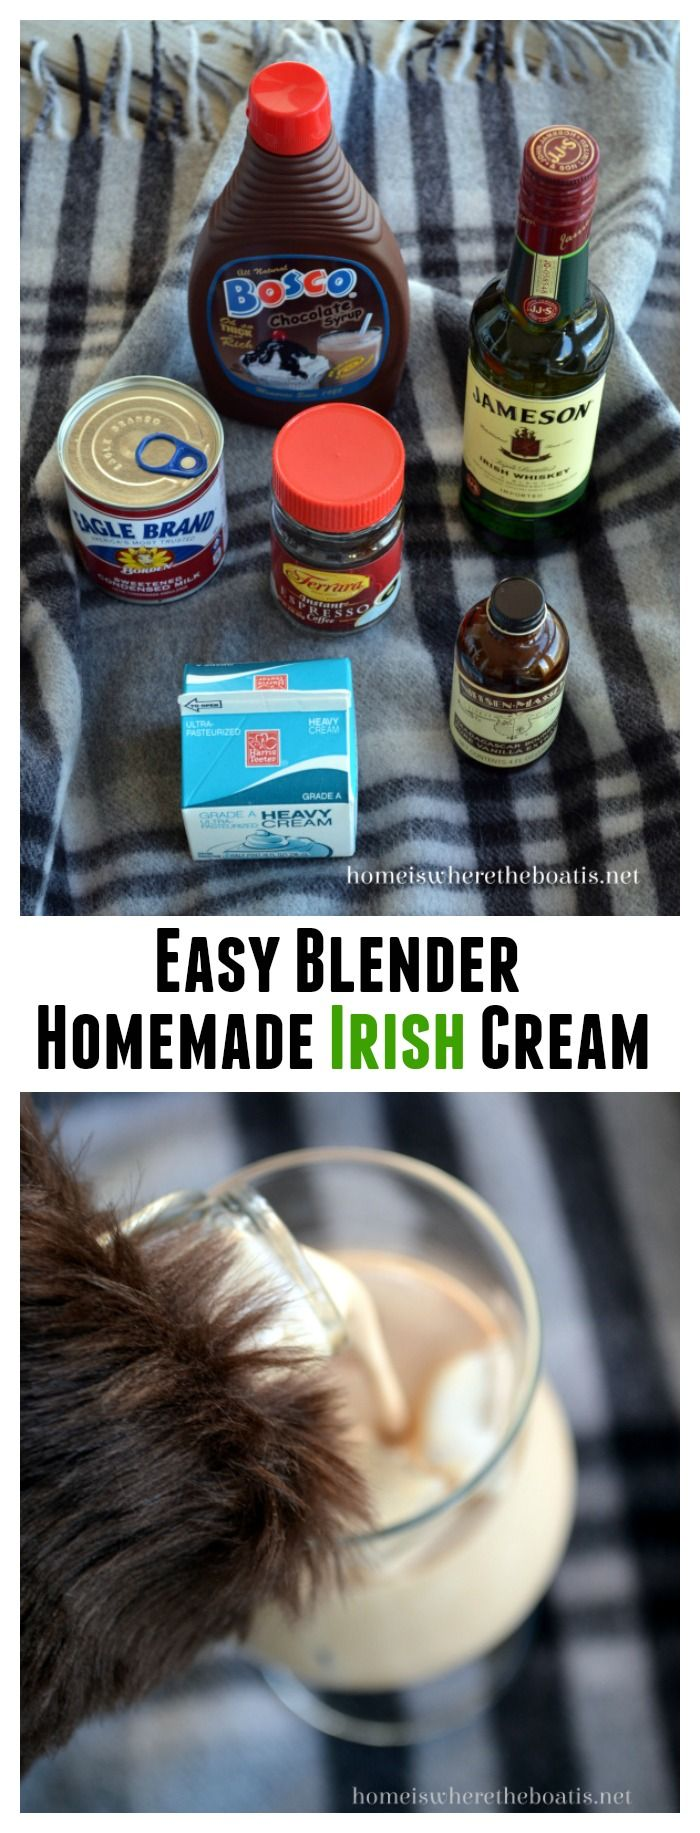 Homemade Irish Cream Liqueur! An easy blender recipe that's ready in 5 minutes. One sip and you'll never buy it again! | ©homeiswheretheboatis.net #cocktail #Irish #stpatricksday #recipe